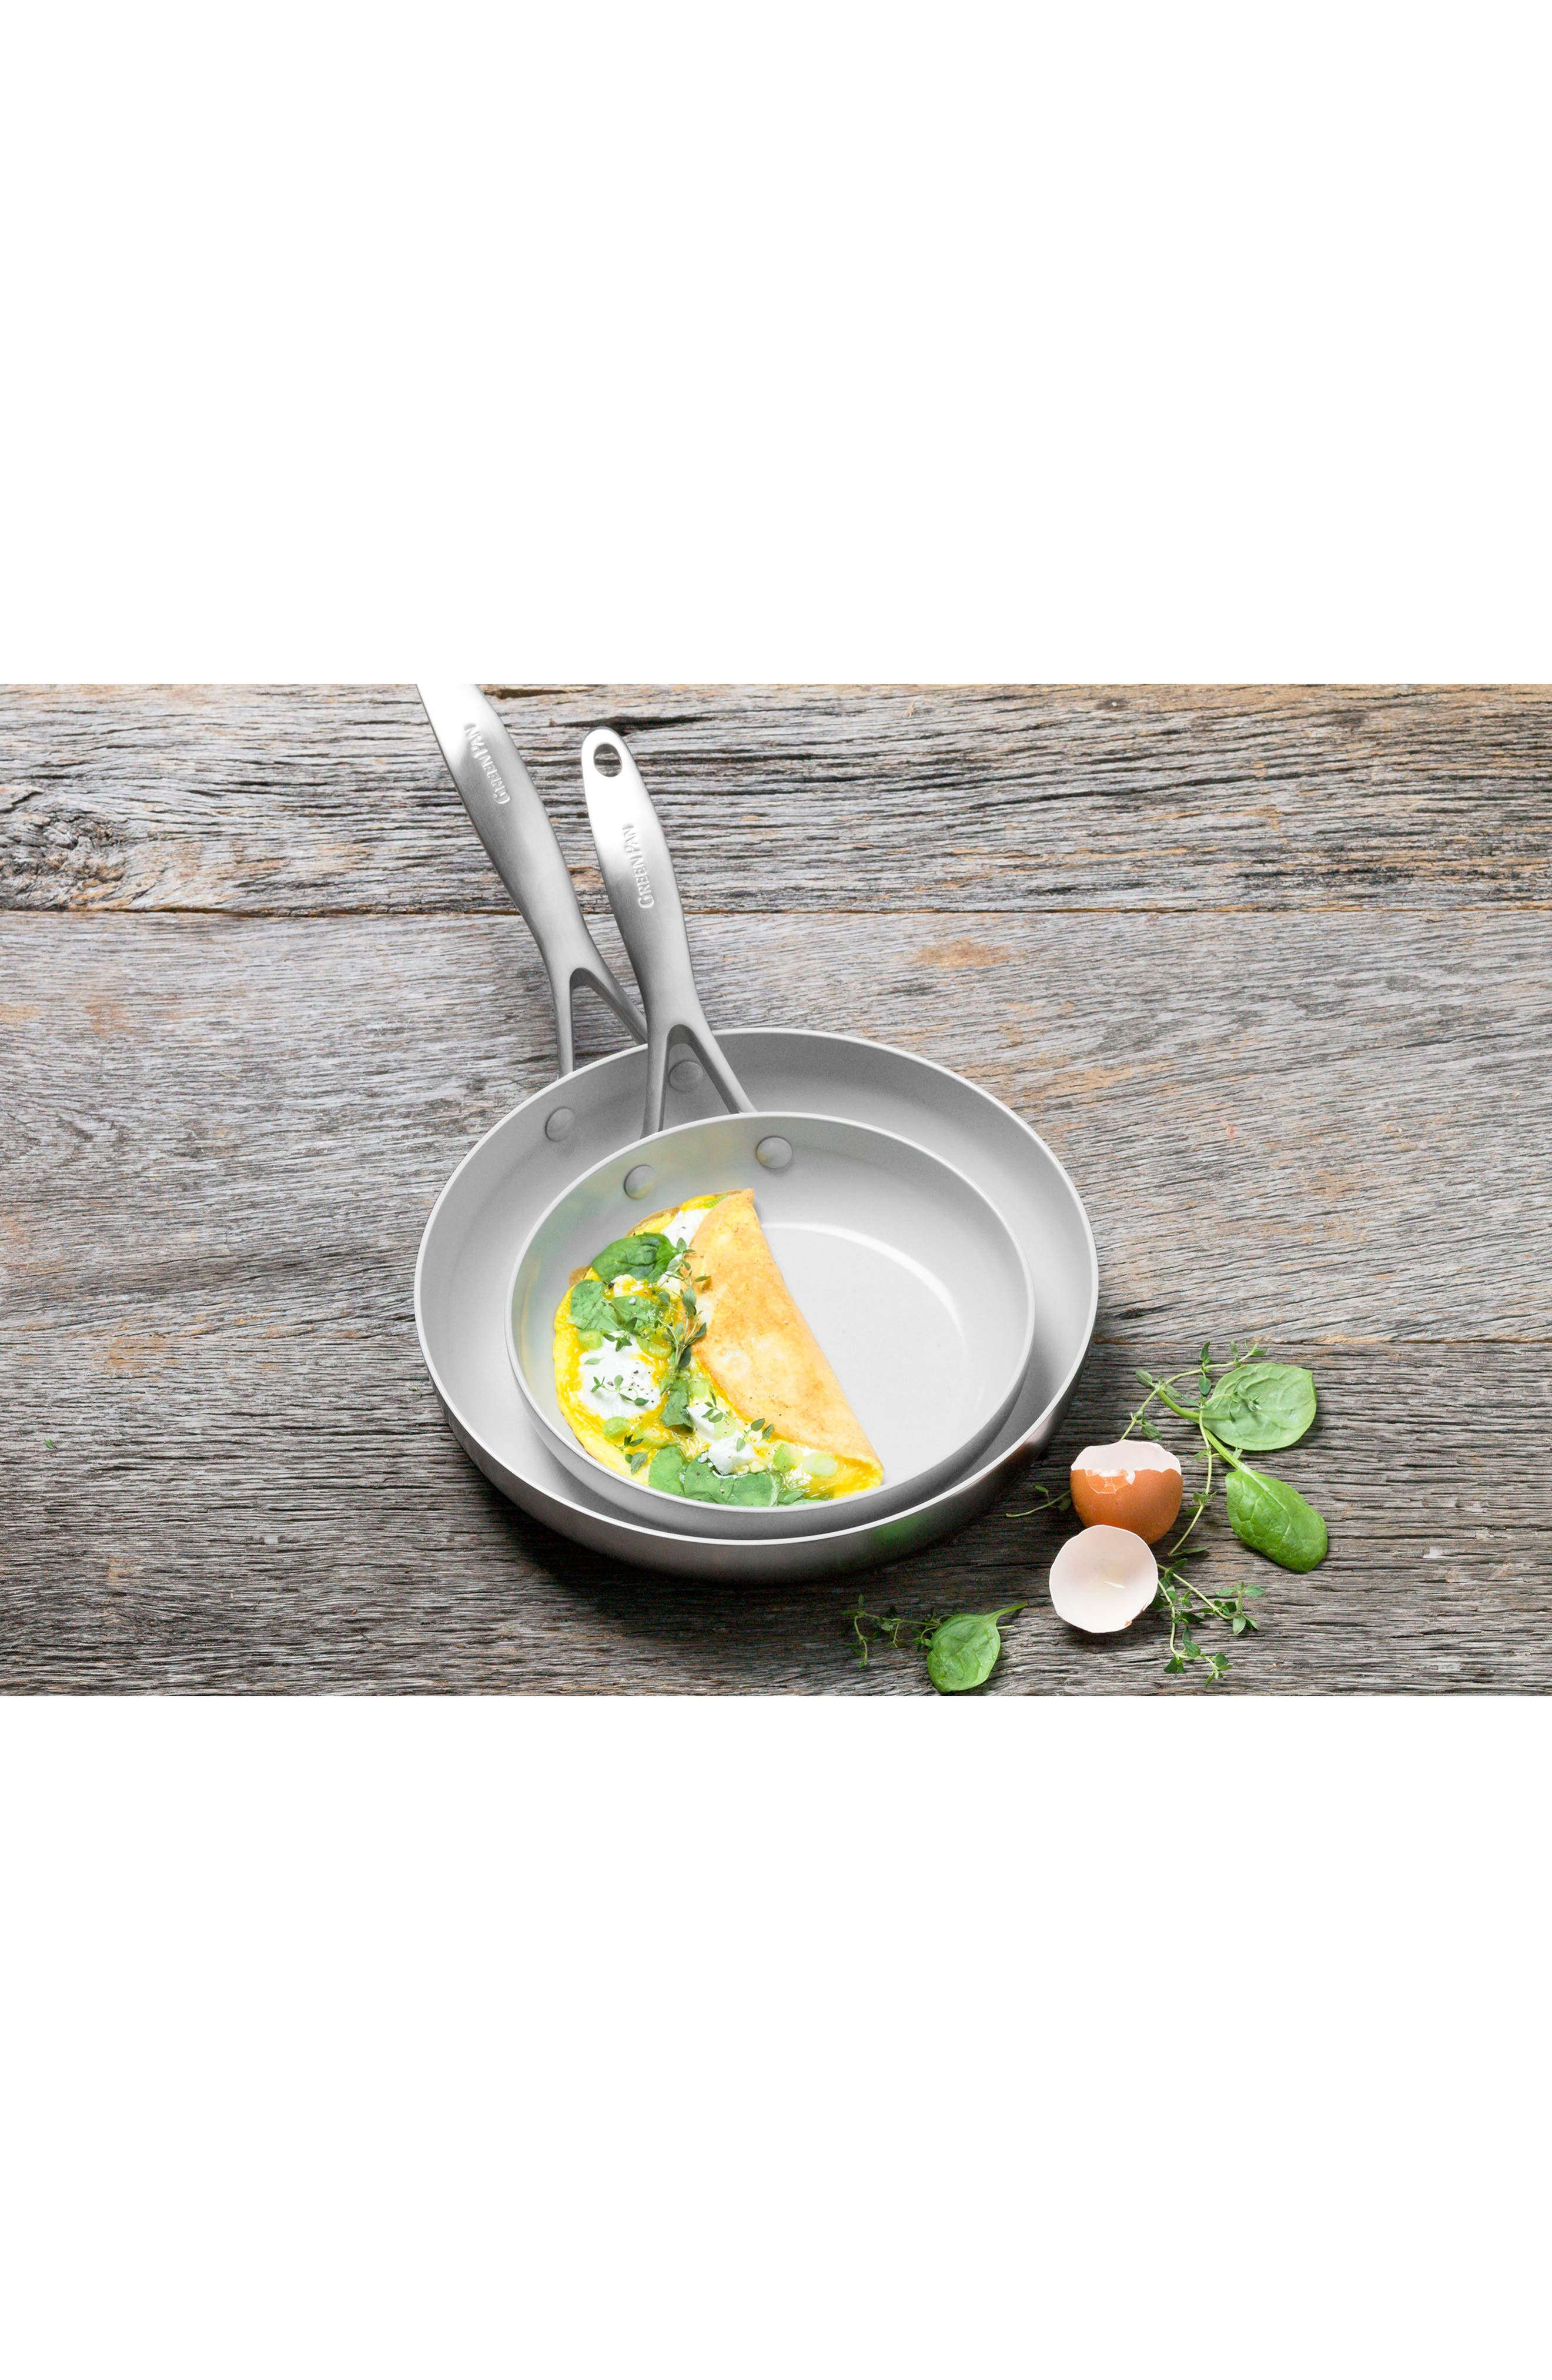 GREENPAN, Venice Pro 8-Inch & 10-Inch Multilayer Stainless Steel Ceramic Nonstick Frying Pan Set, Alternate thumbnail 6, color, STAINLESS STEEL